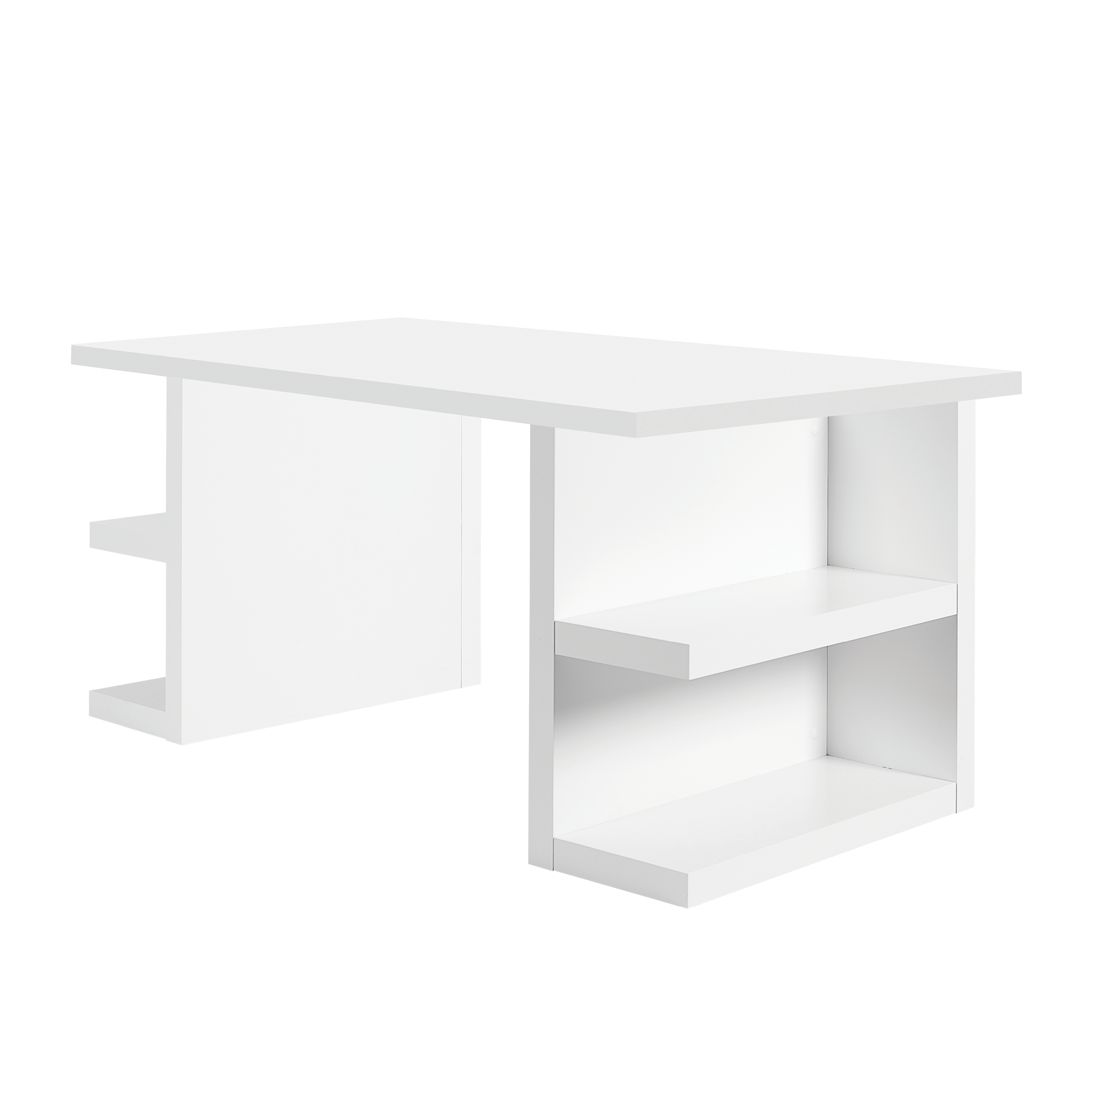 Home 24 - Bureau multi storage - blanc mat, loftscape